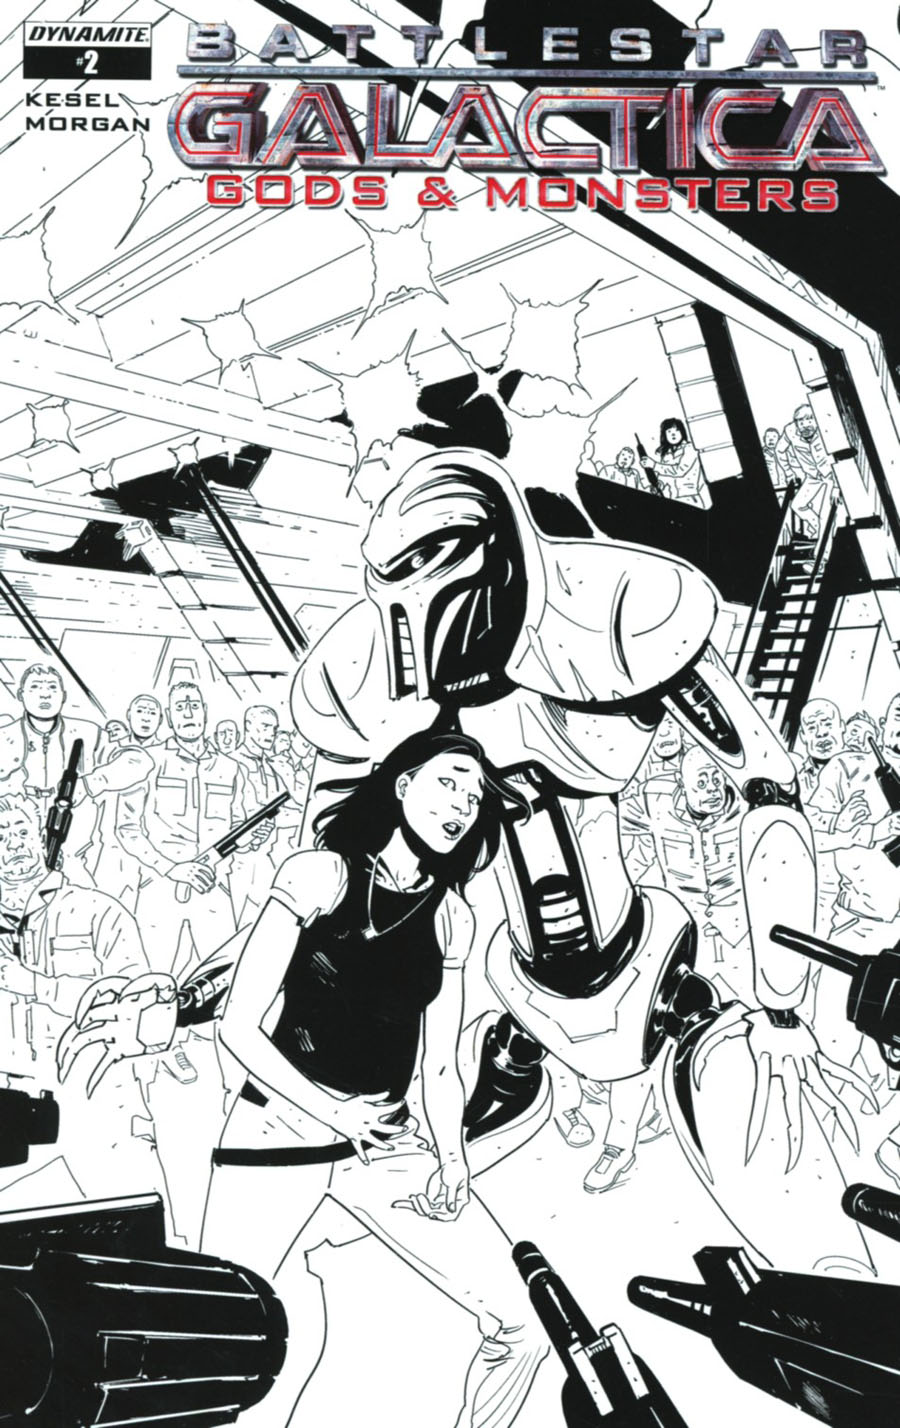 Battlestar Galactica Gods & Monsters #2 Cover C Incentive Alec Morgan Black & White Cover